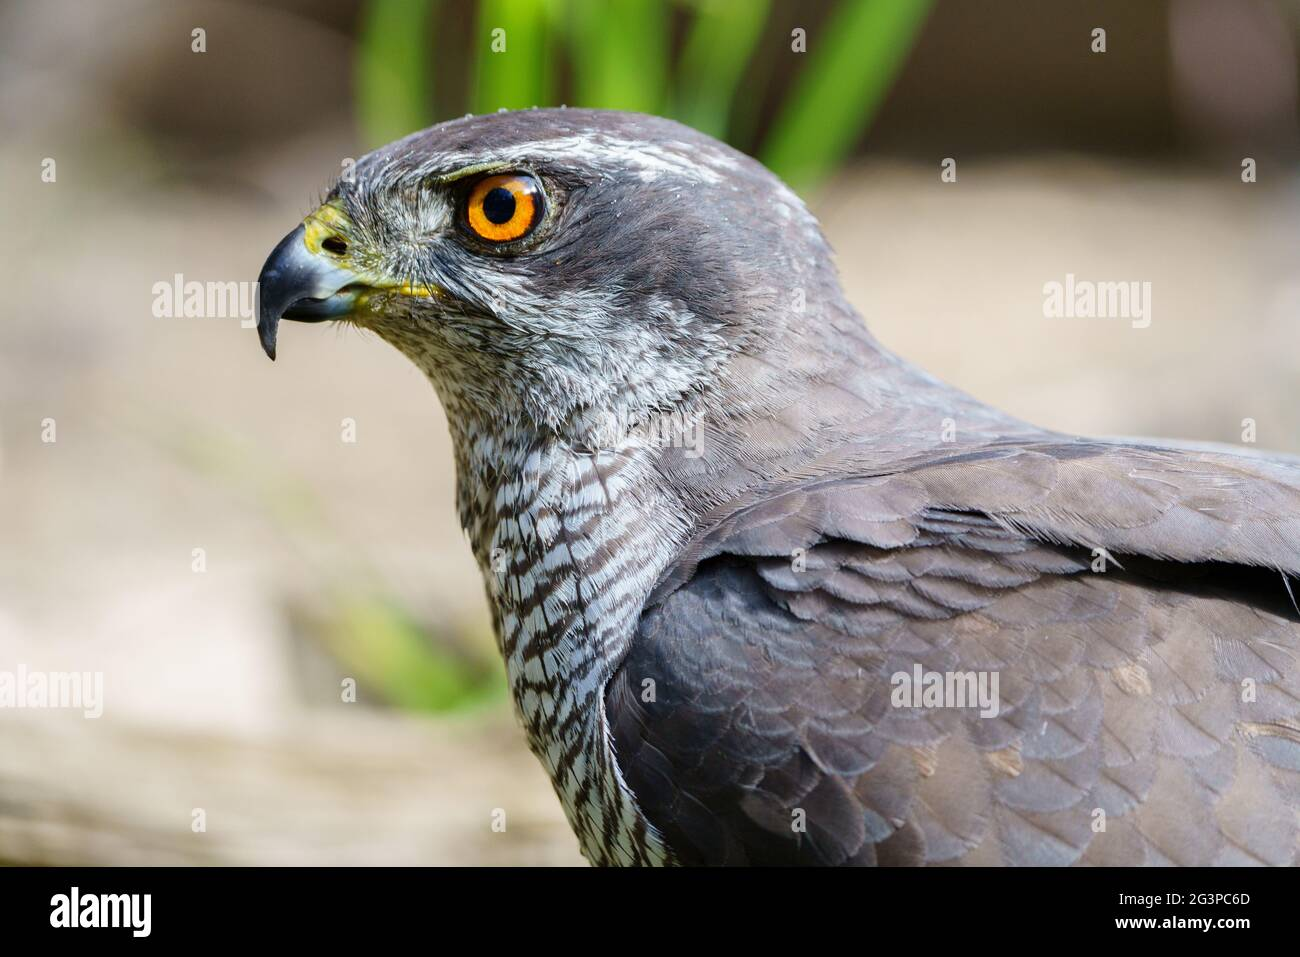 Close-up view of Northern goshawk (Accipiter gentilis), with out of focus background. Stock Photo